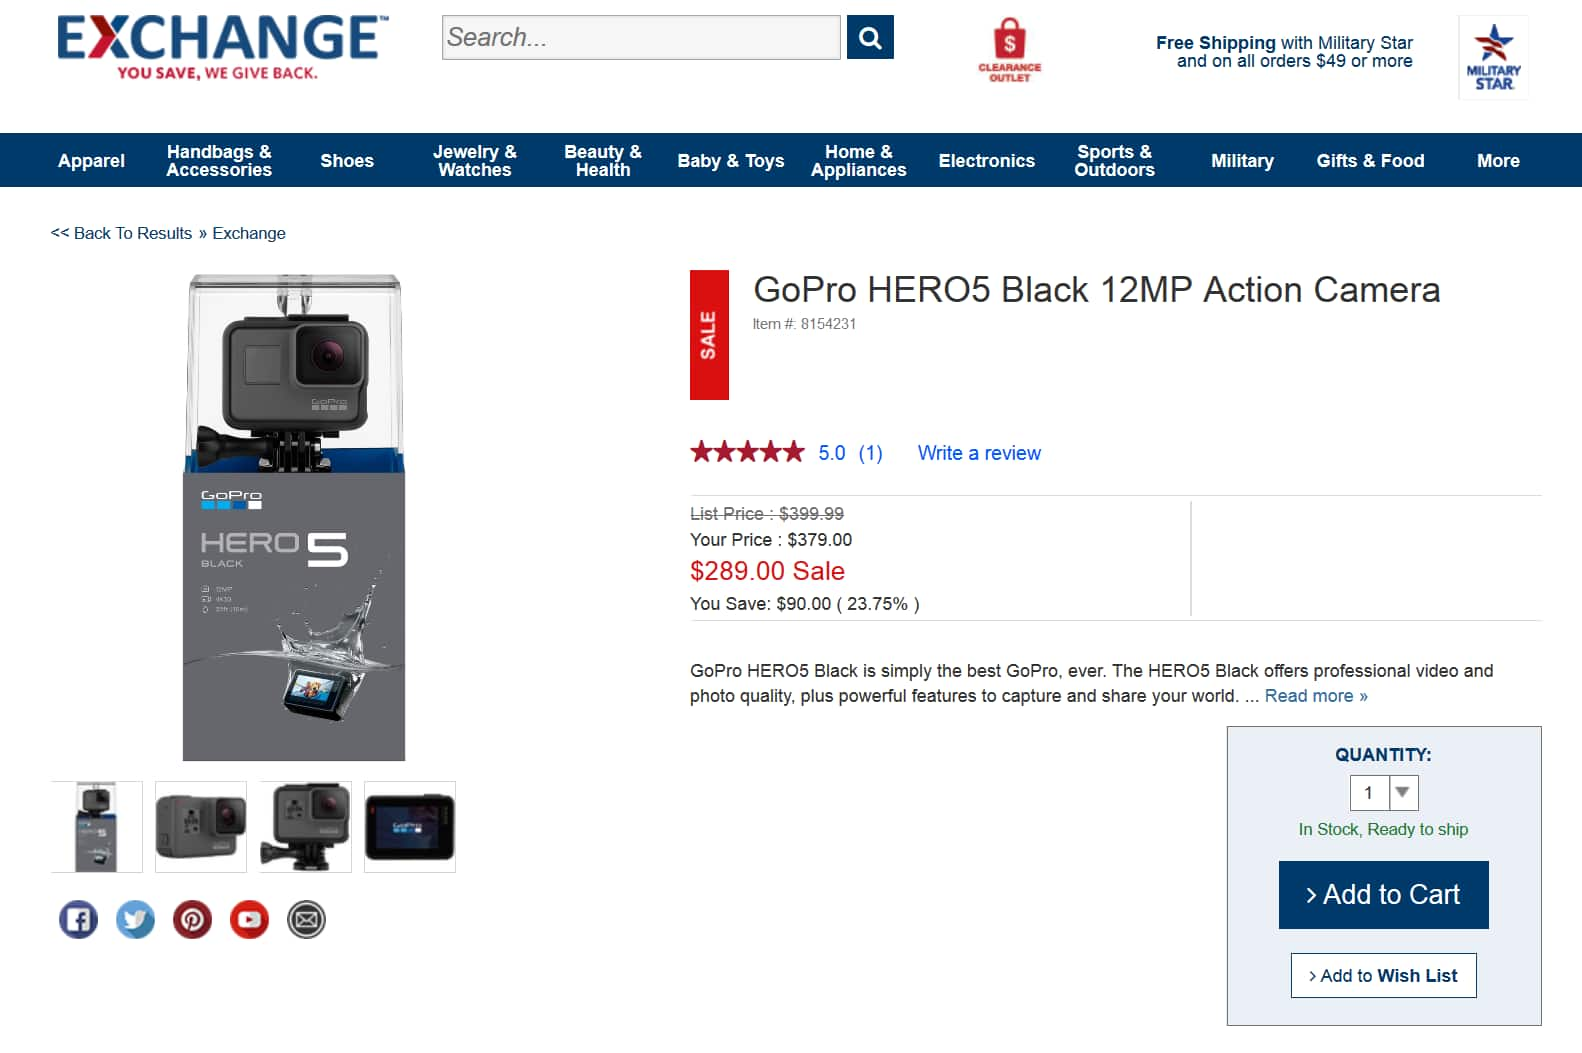 GoPro HERO5 Black $289 + Free Shipping $289